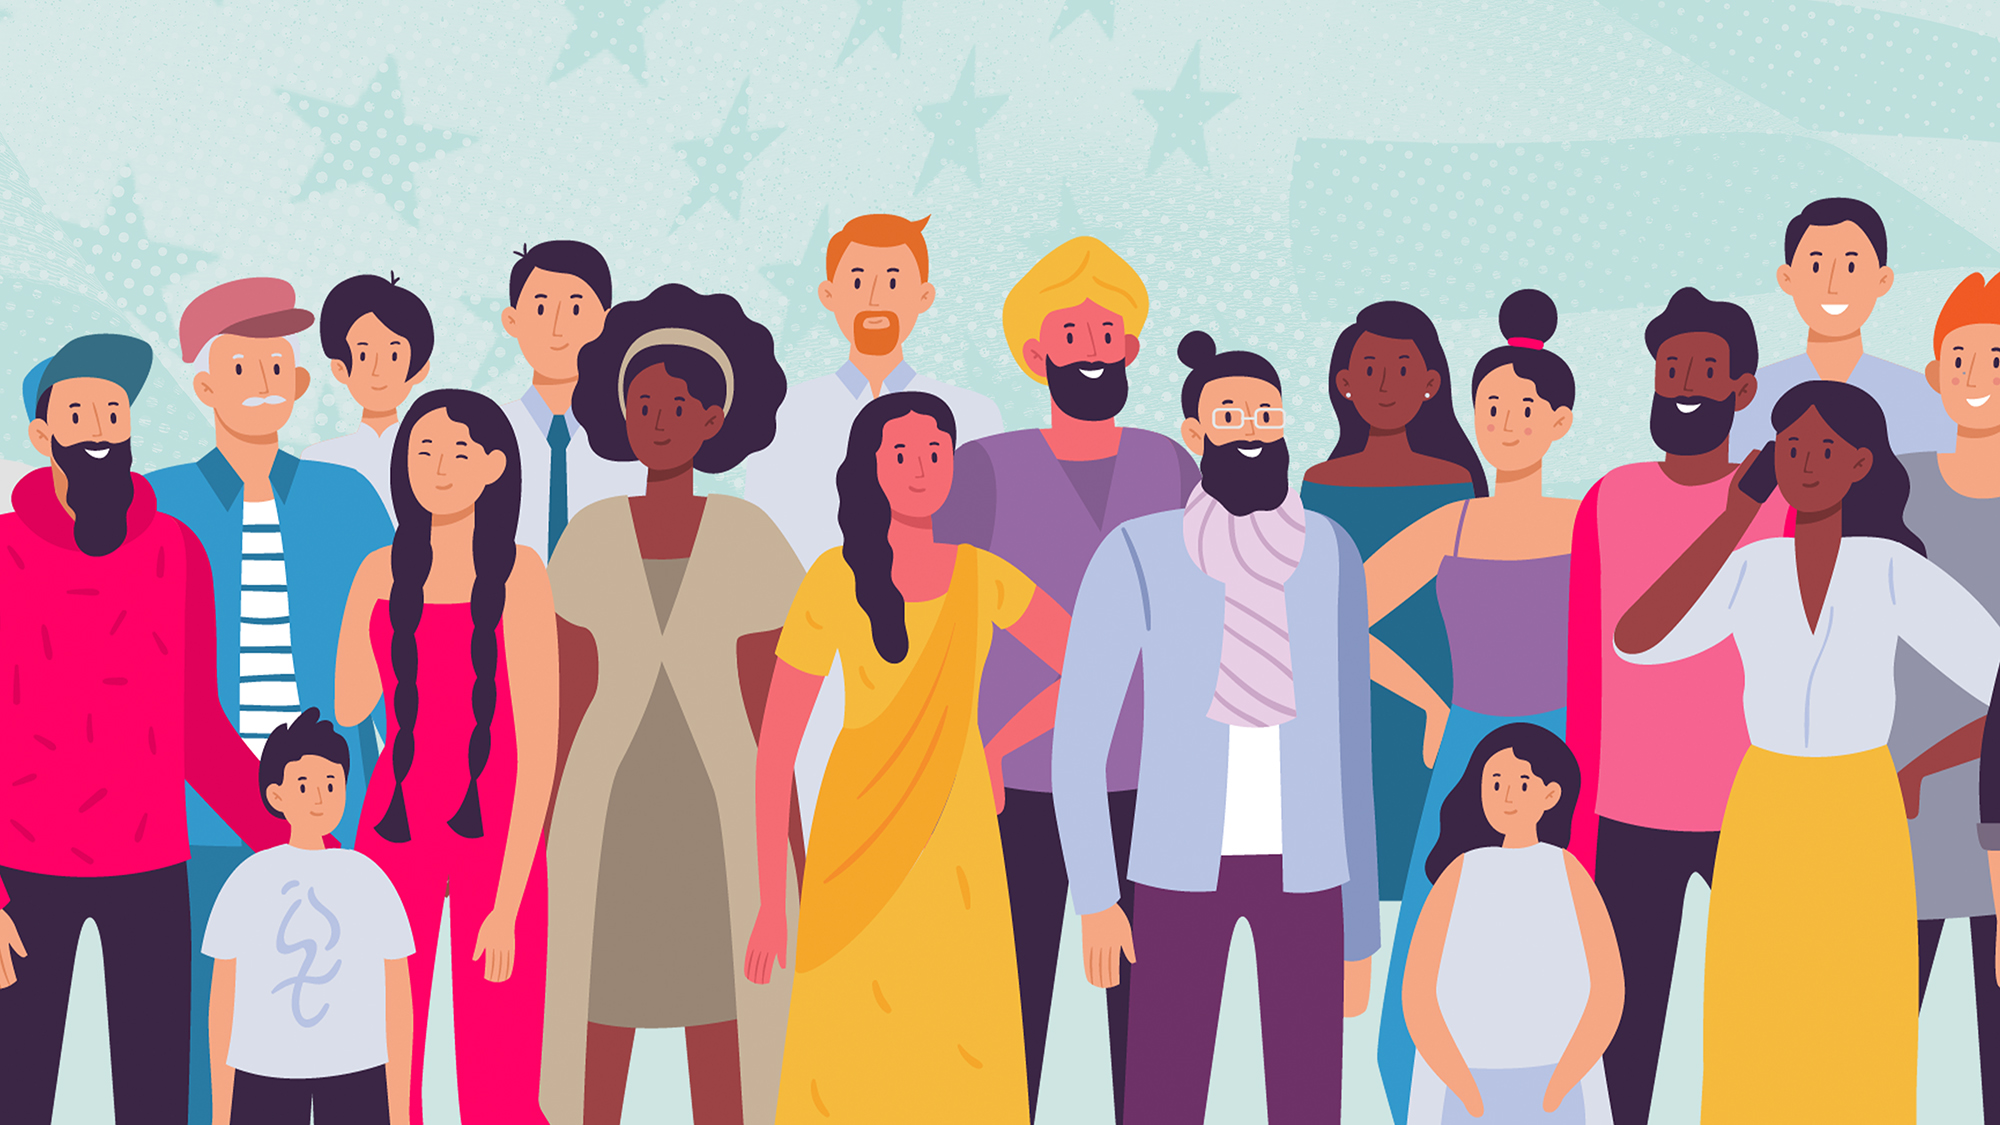 An illustration of a Multiethnic group of people on a designed background